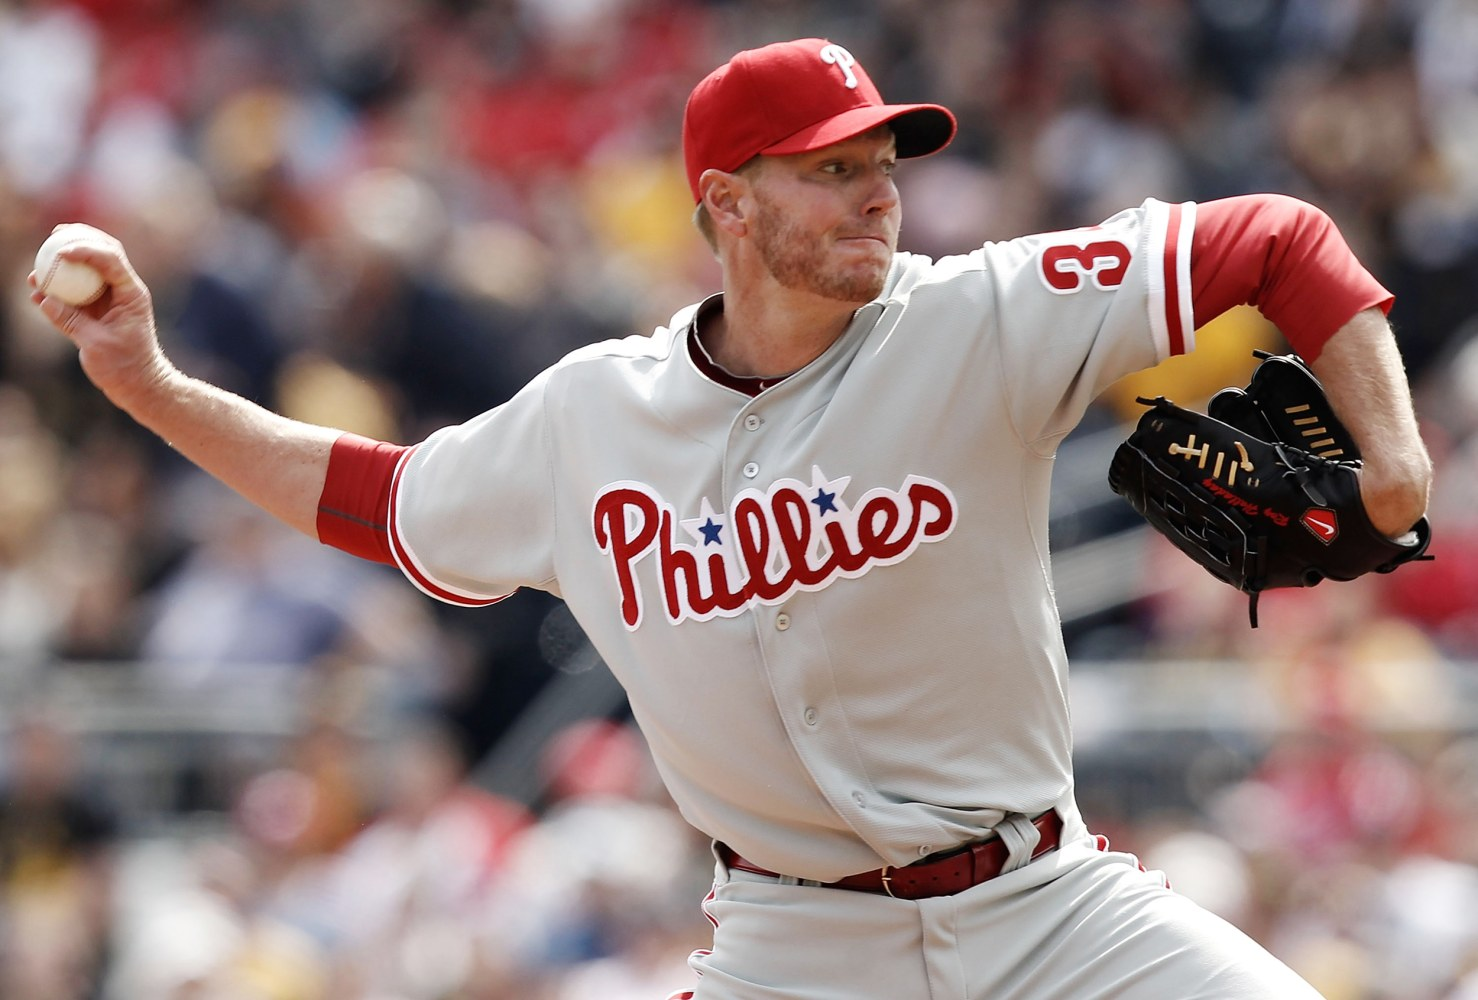 Roy Halladay, 40, dies in plane crash in Gulf of Mexico